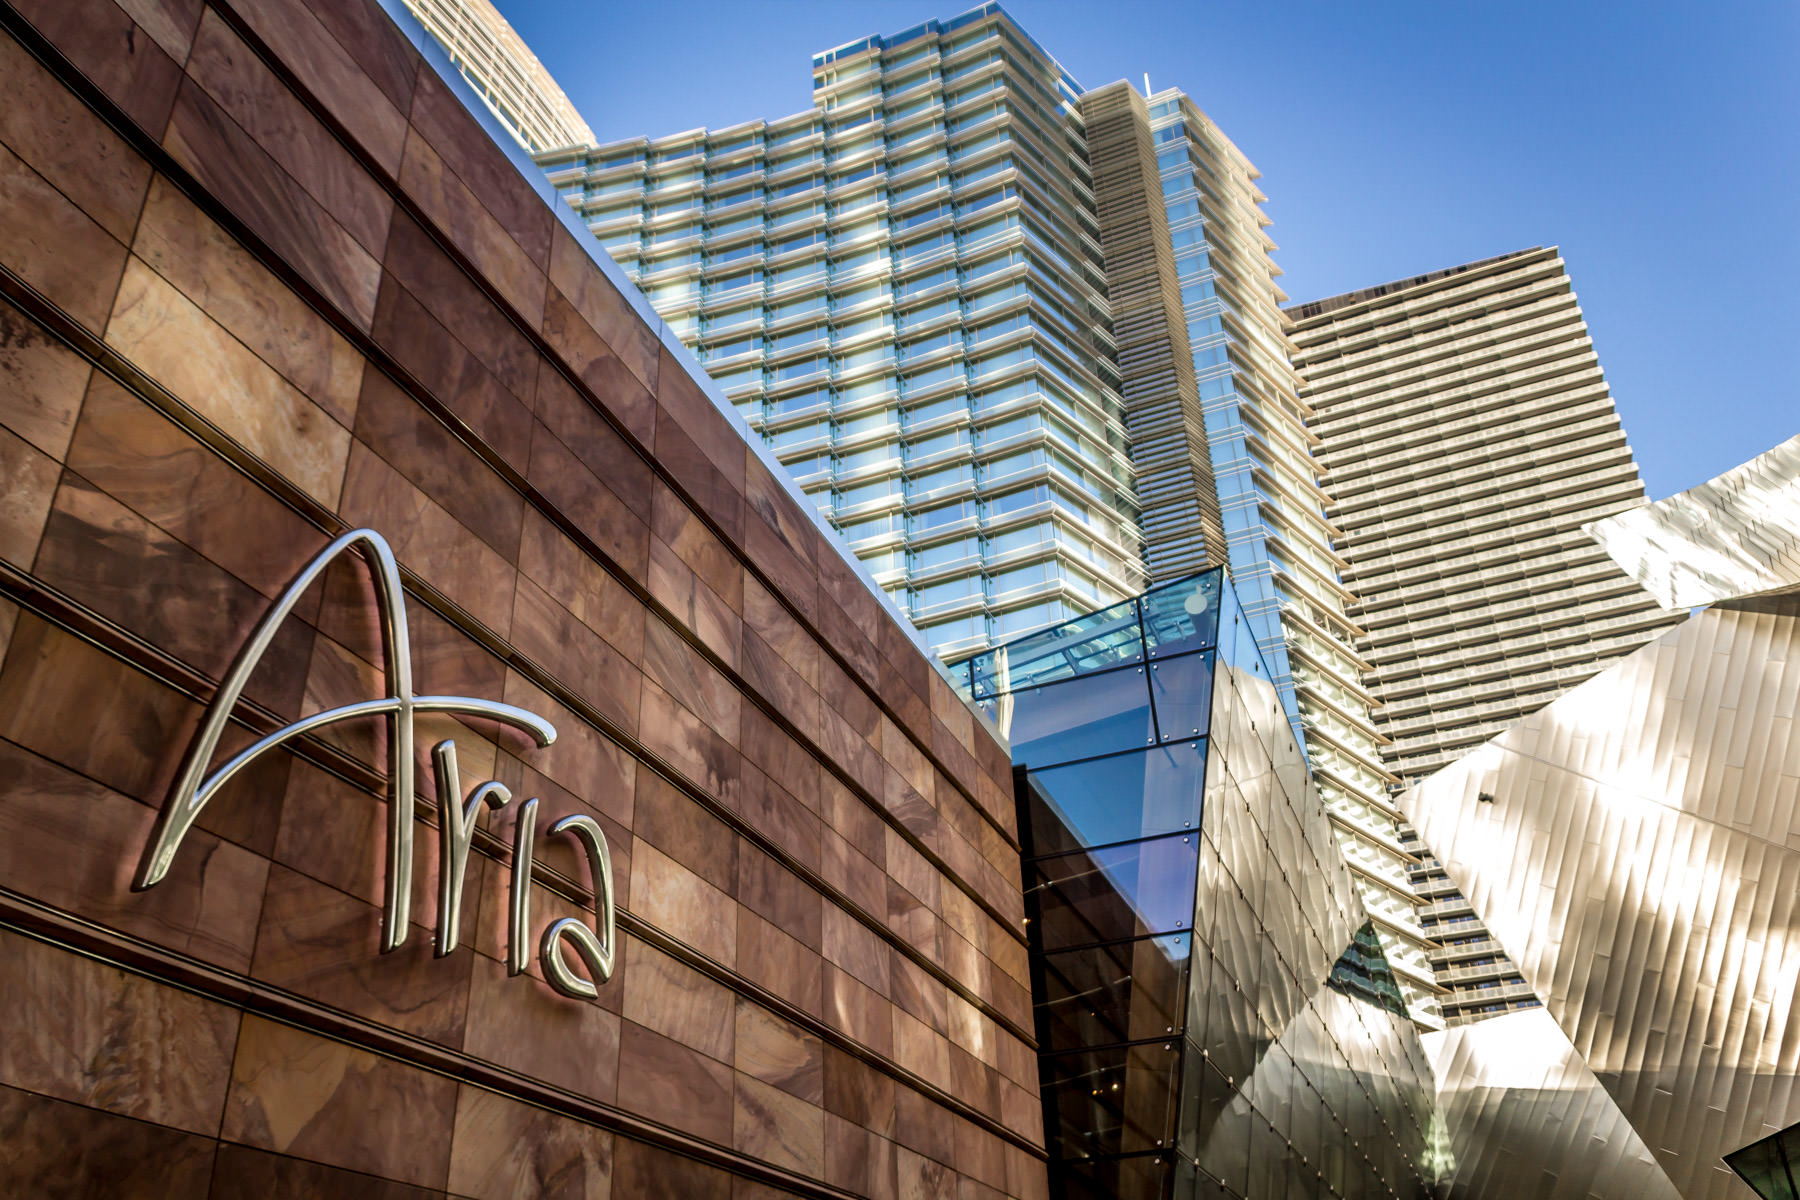 Ground-level signage at The Aria Hotel & Casino, CityCenter, Las Vegas.